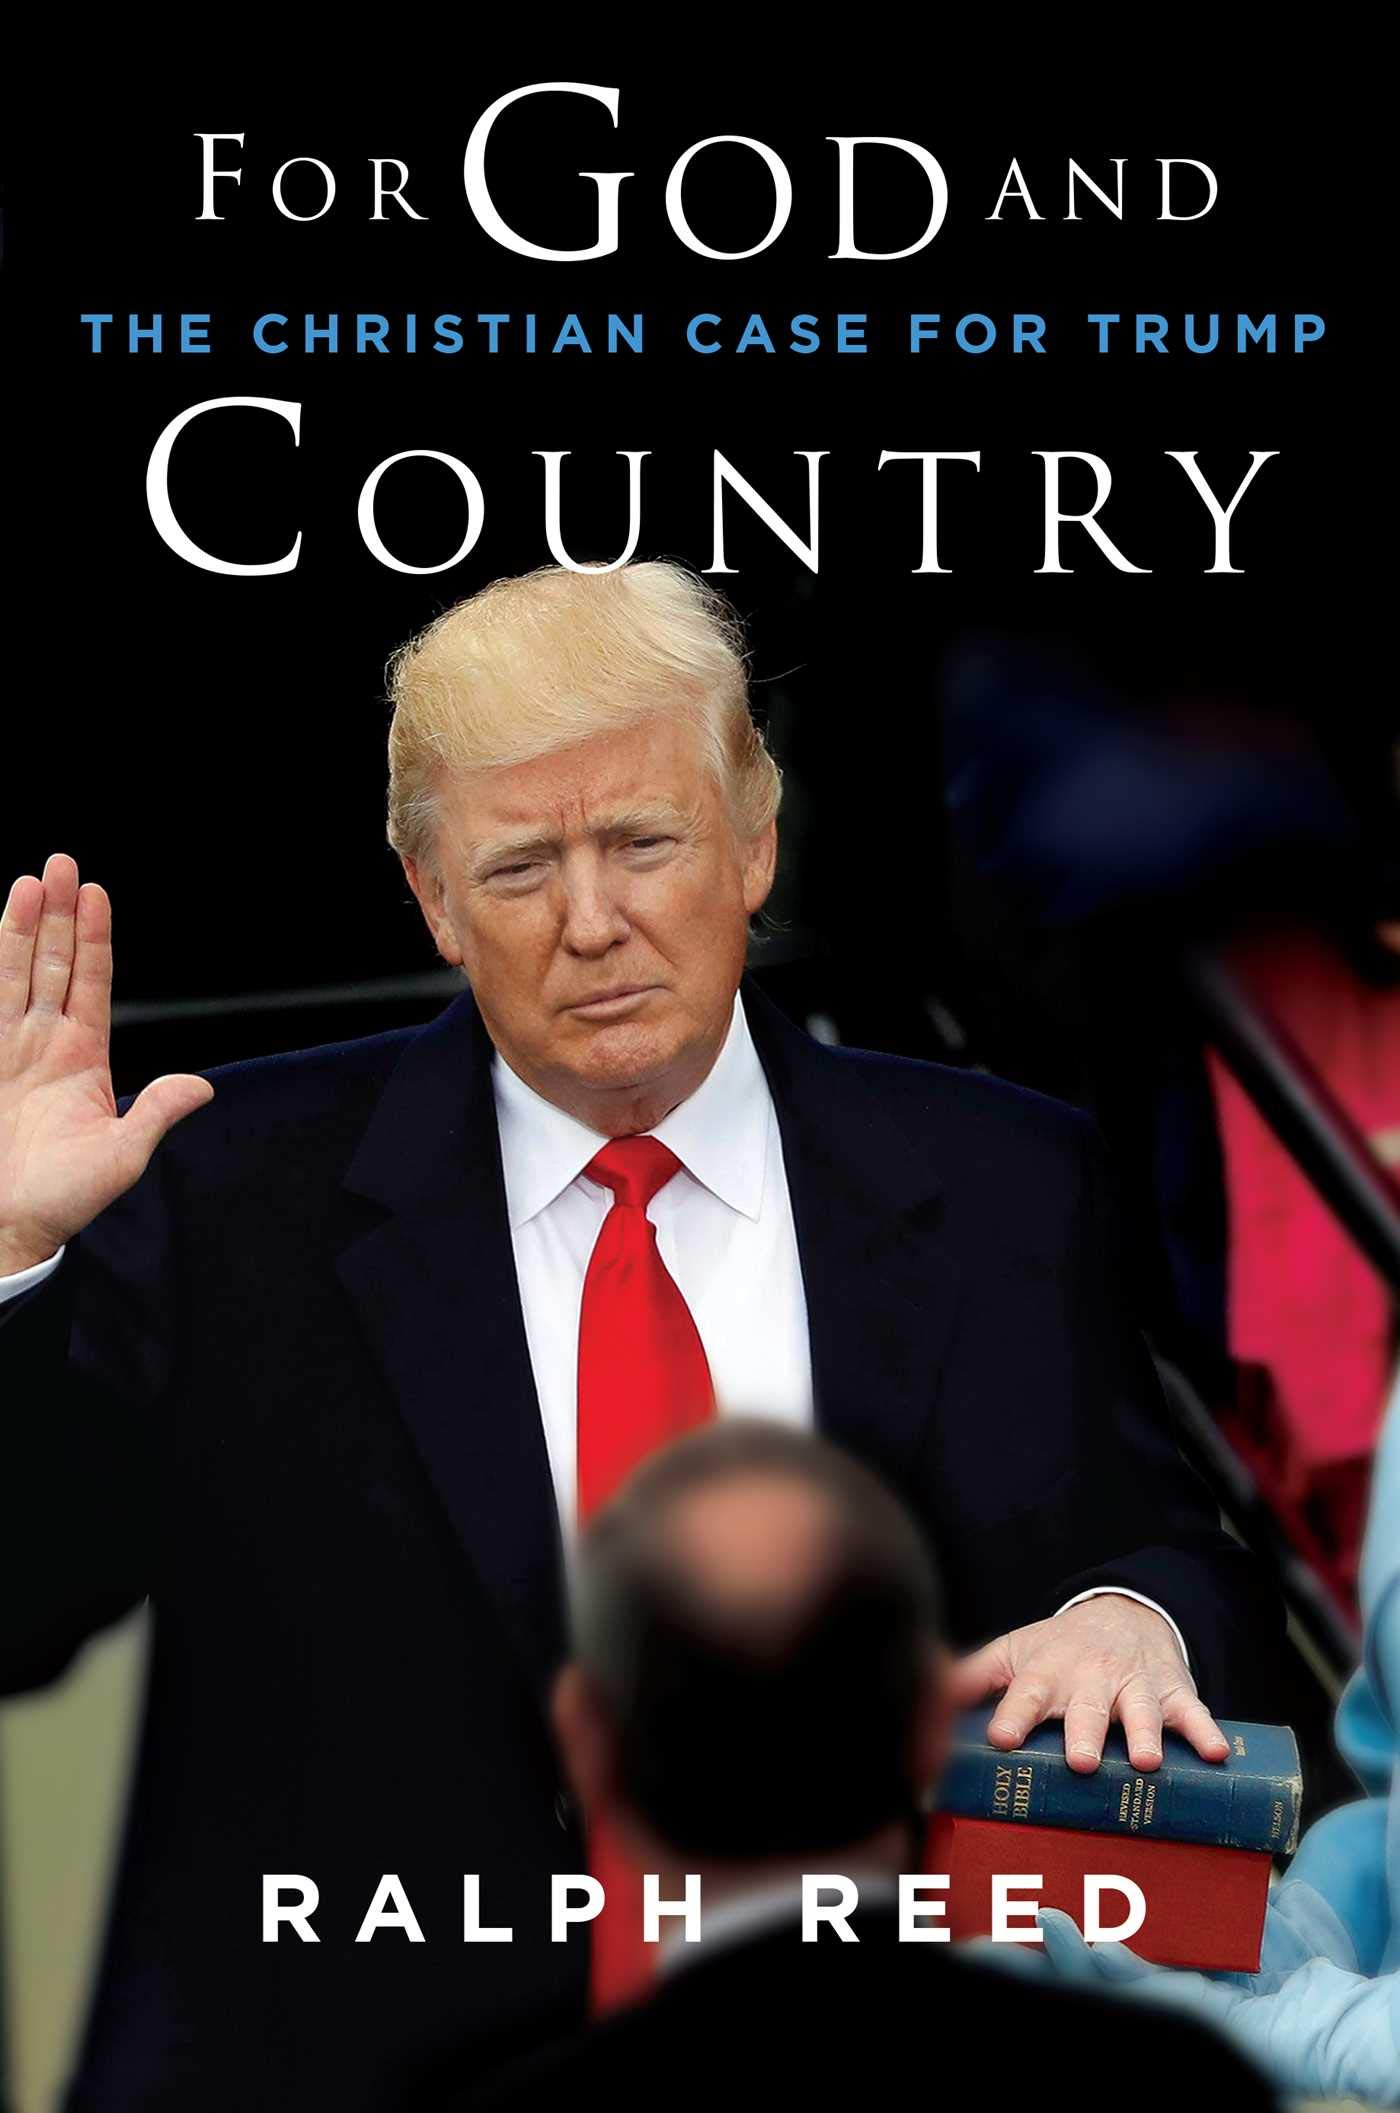 For God And Country The Christian Case For Trump Amazon Co Uk Reed Ralph 9781684510573 Books